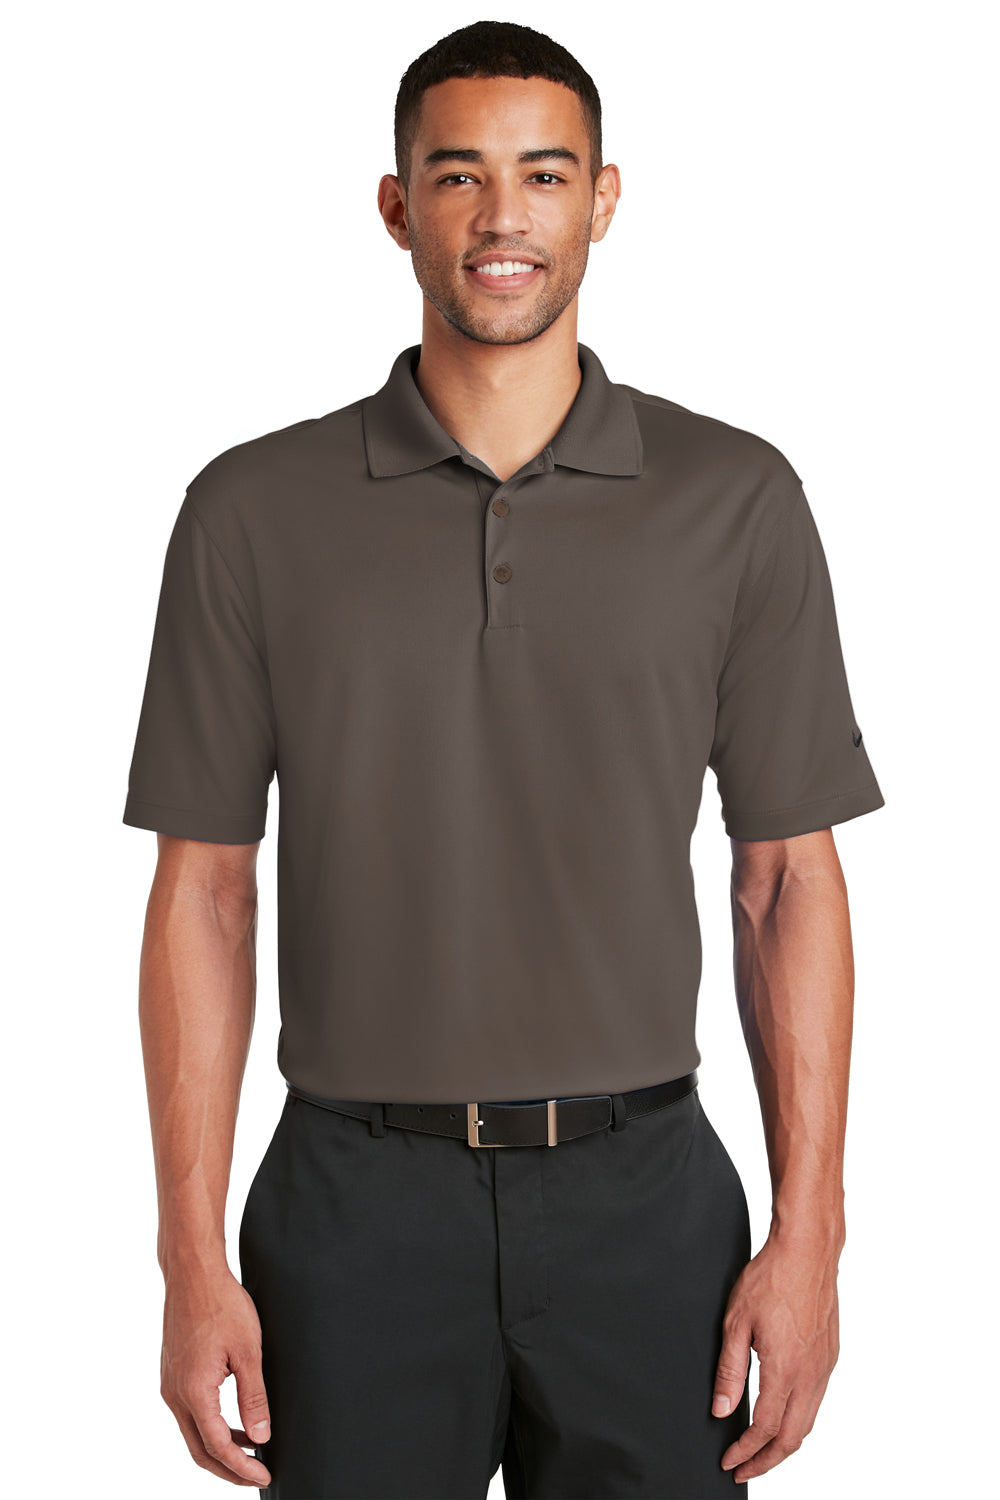 Nike 363807 Mens Dri-Fit Moisture Wicking Short Sleeve Polo Shirt Brown Front